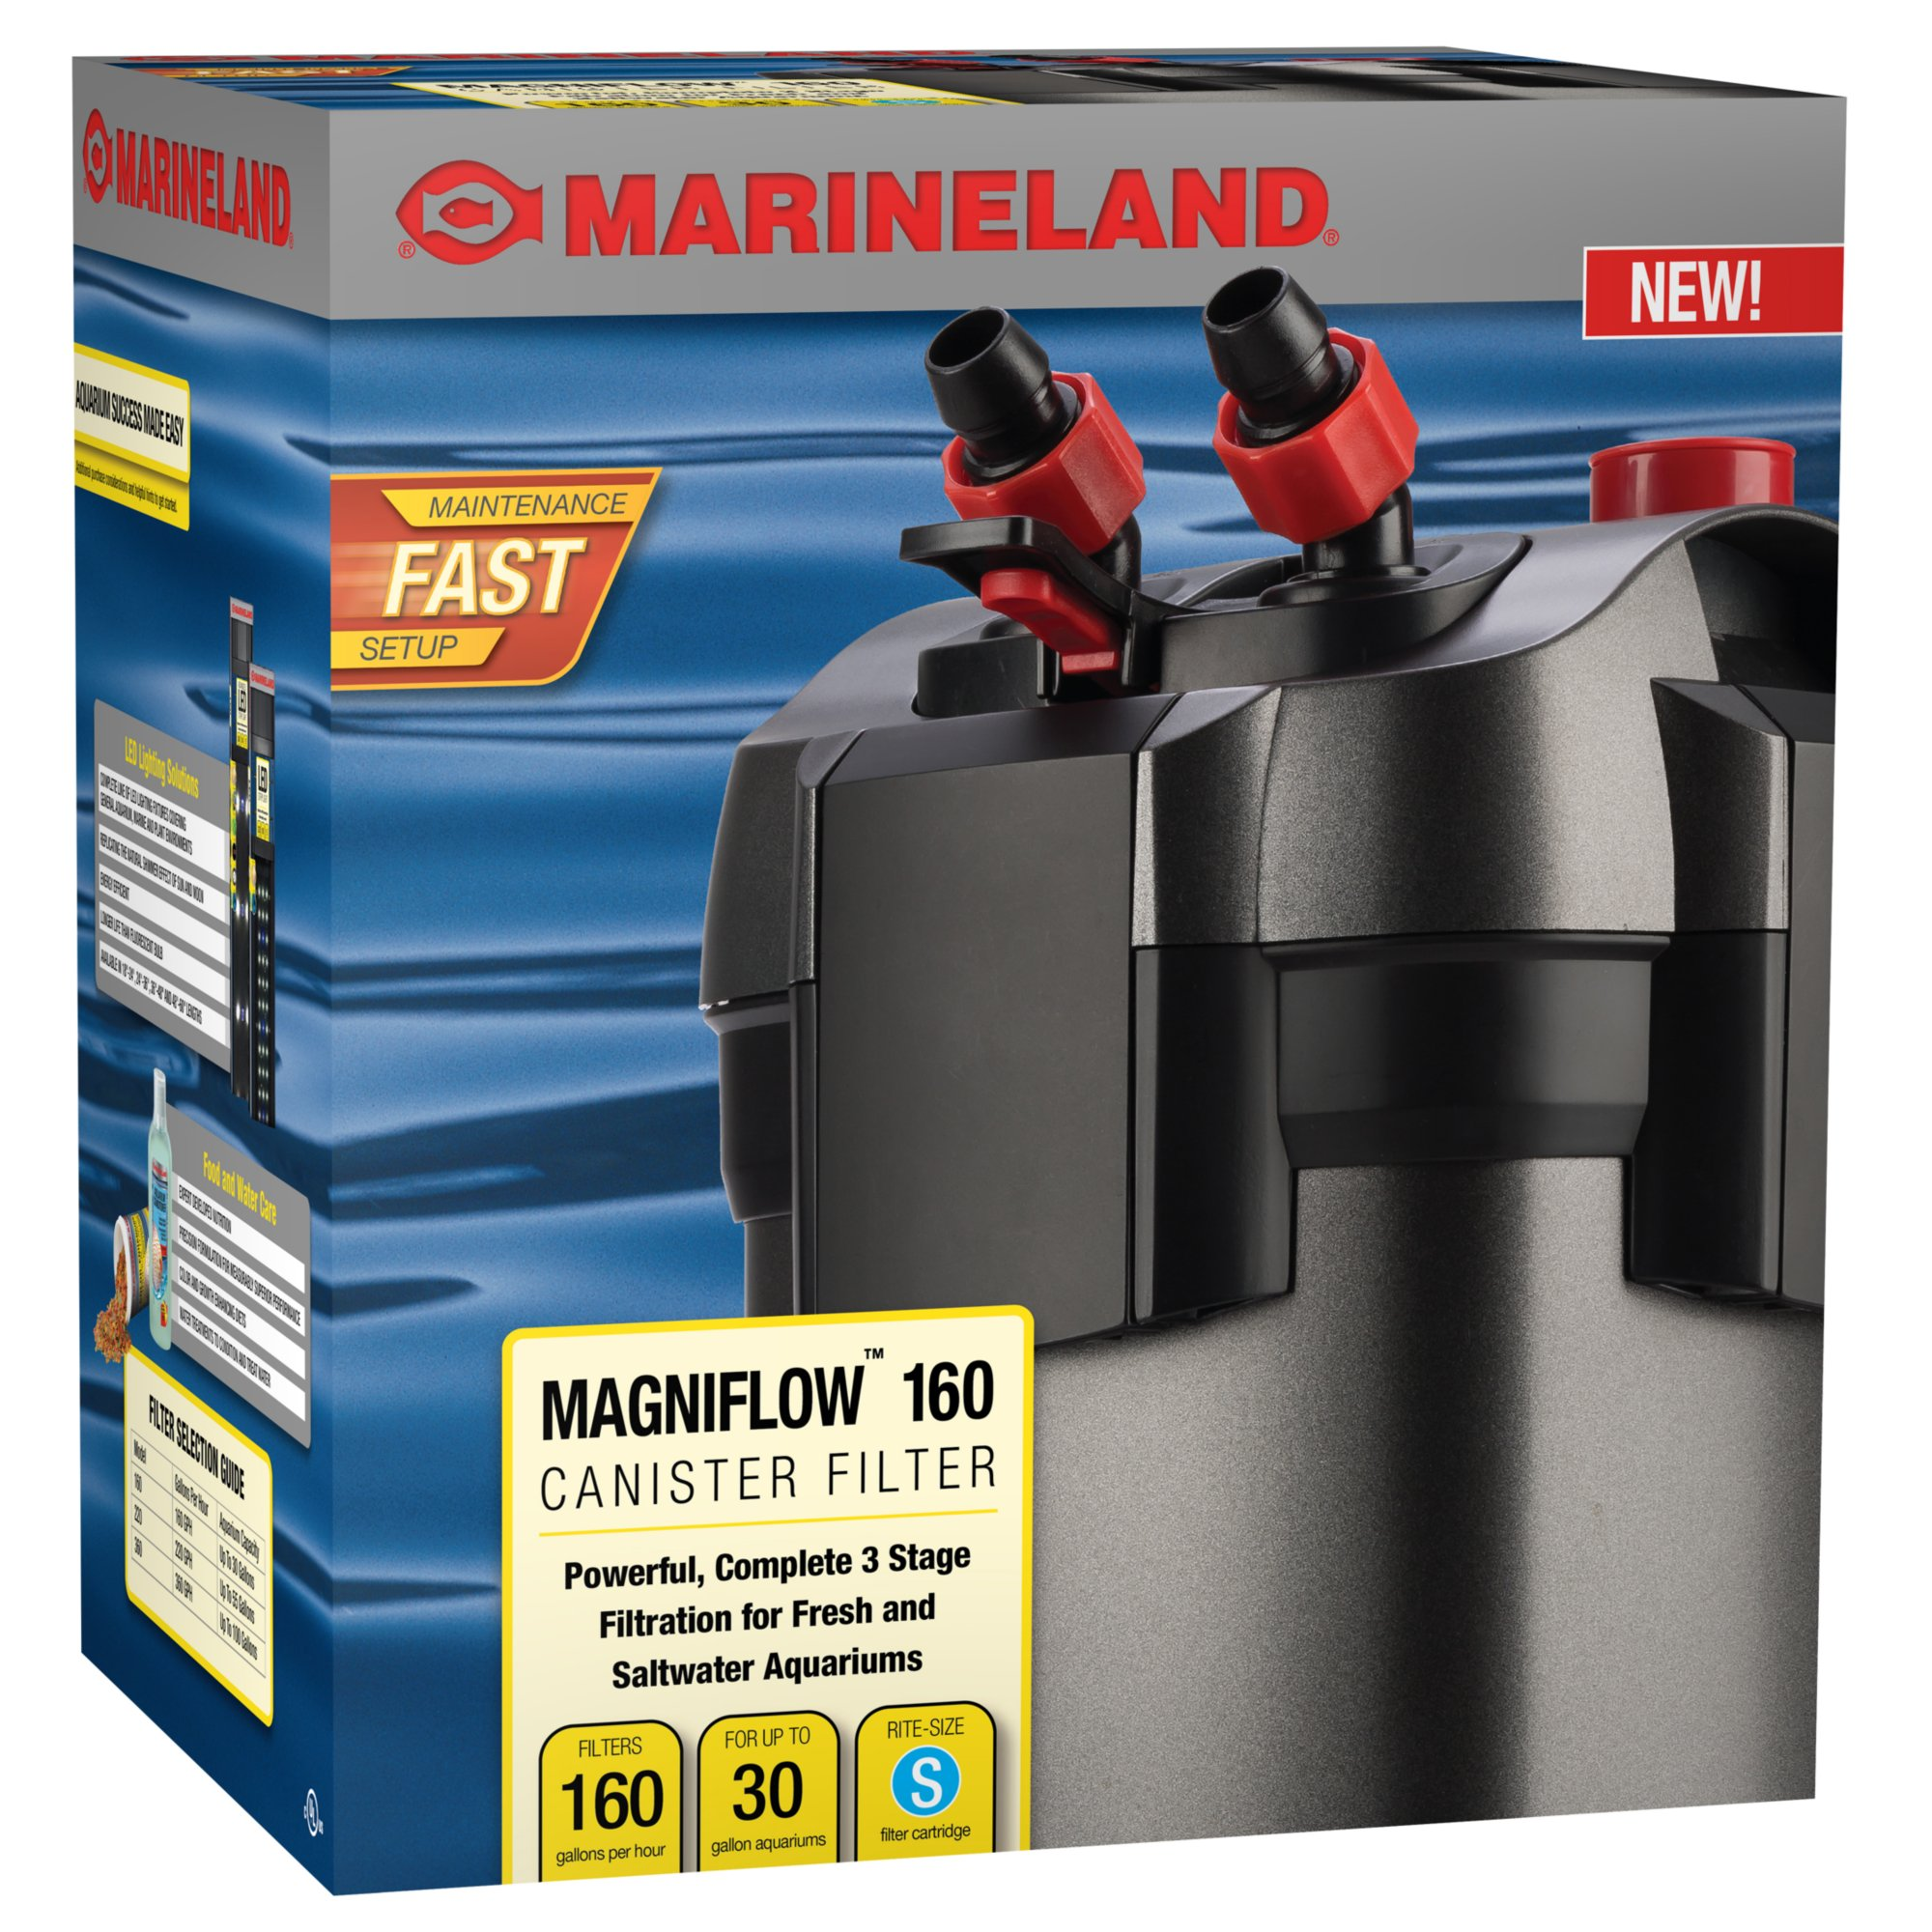 Marineland magniflow 160 canister filter petco for Petco fish tank filters